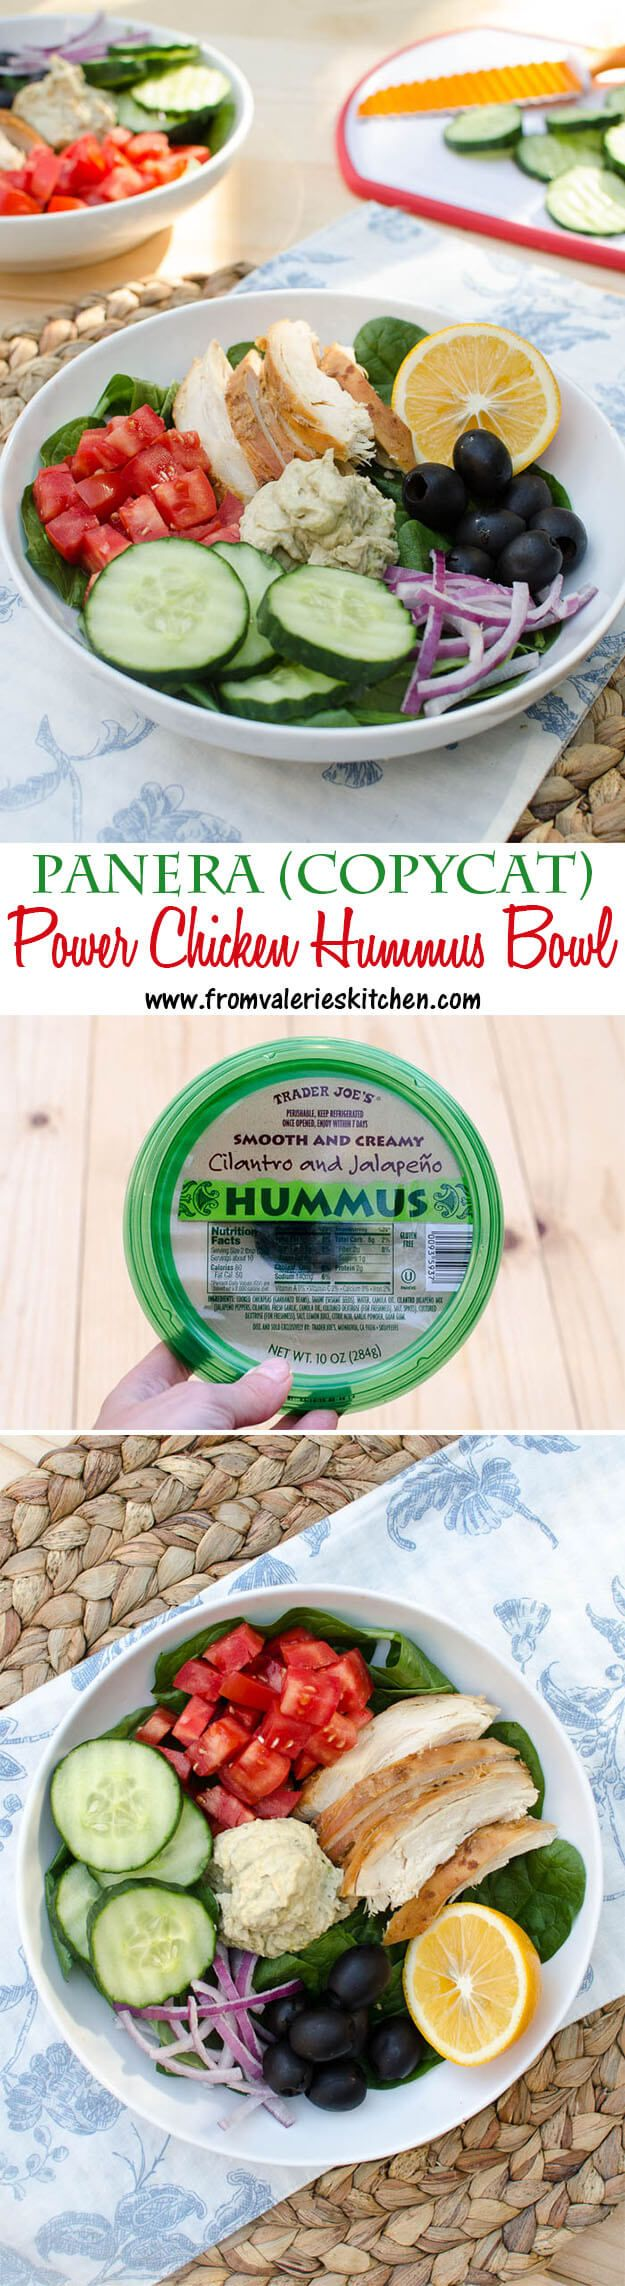 This make-at-home version of the Panera menu item is a nutrition packed, zero guilt meal that truly satisfies! ~ http://www.fromvalerieskitchen.com/ @crispcooking #panera #createwithcrisp #sp